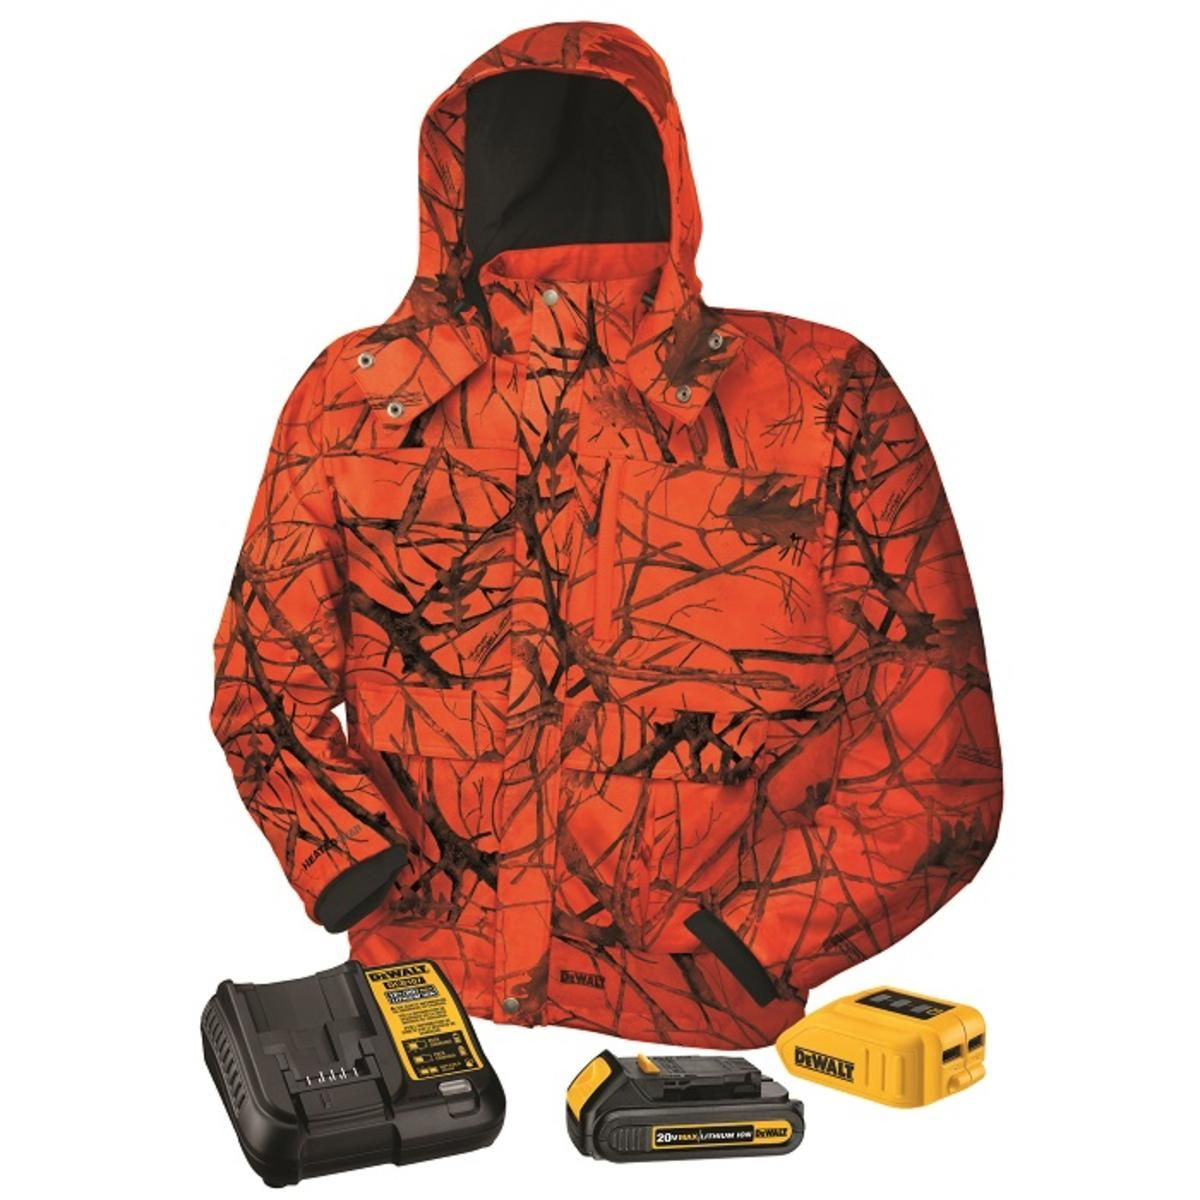 566bffa599 DeWalt 20V 12V MAX Lithium Ion TRUE TIMBER BLAZE Camo Heated Jacket Kit -  The Warming Store